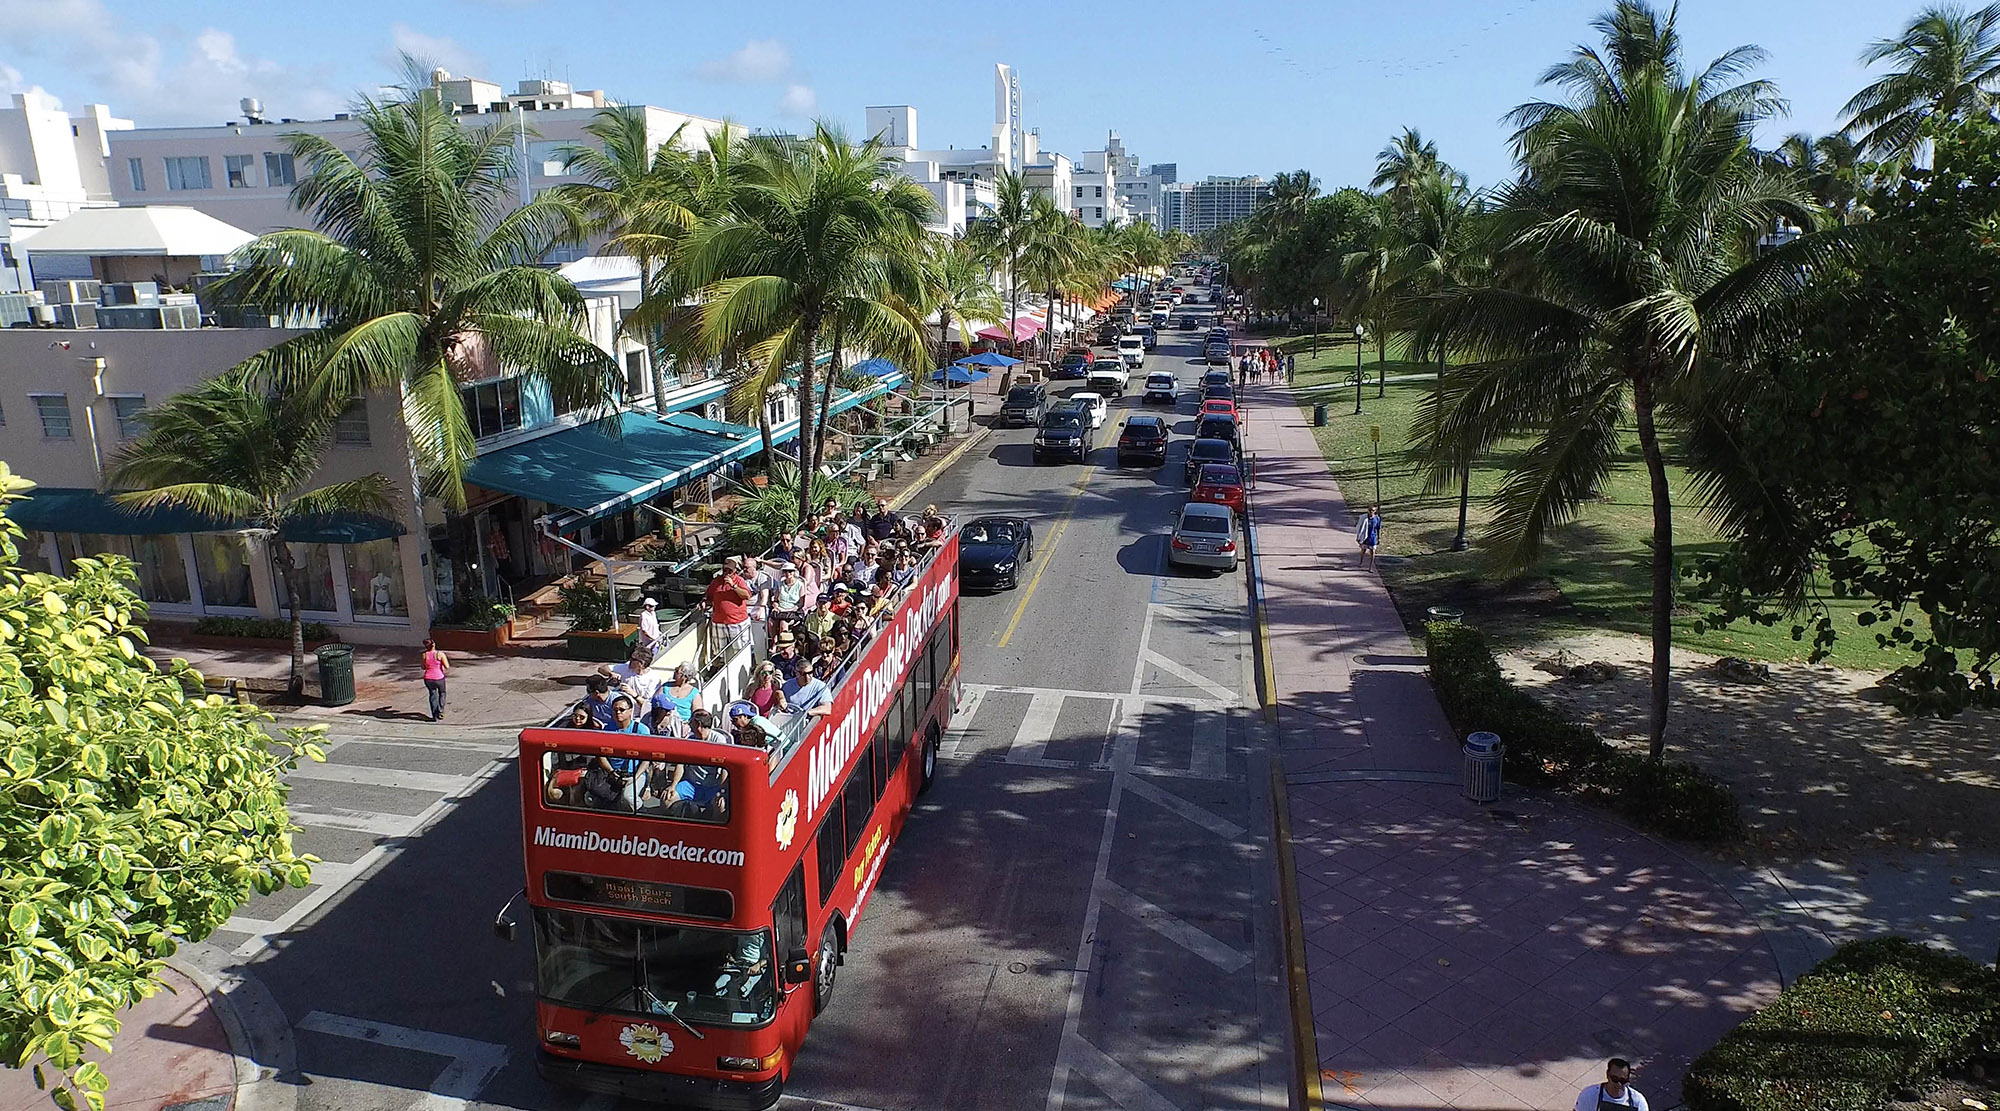 miami-double-decker-tour-of-miami-beach-2.jpg